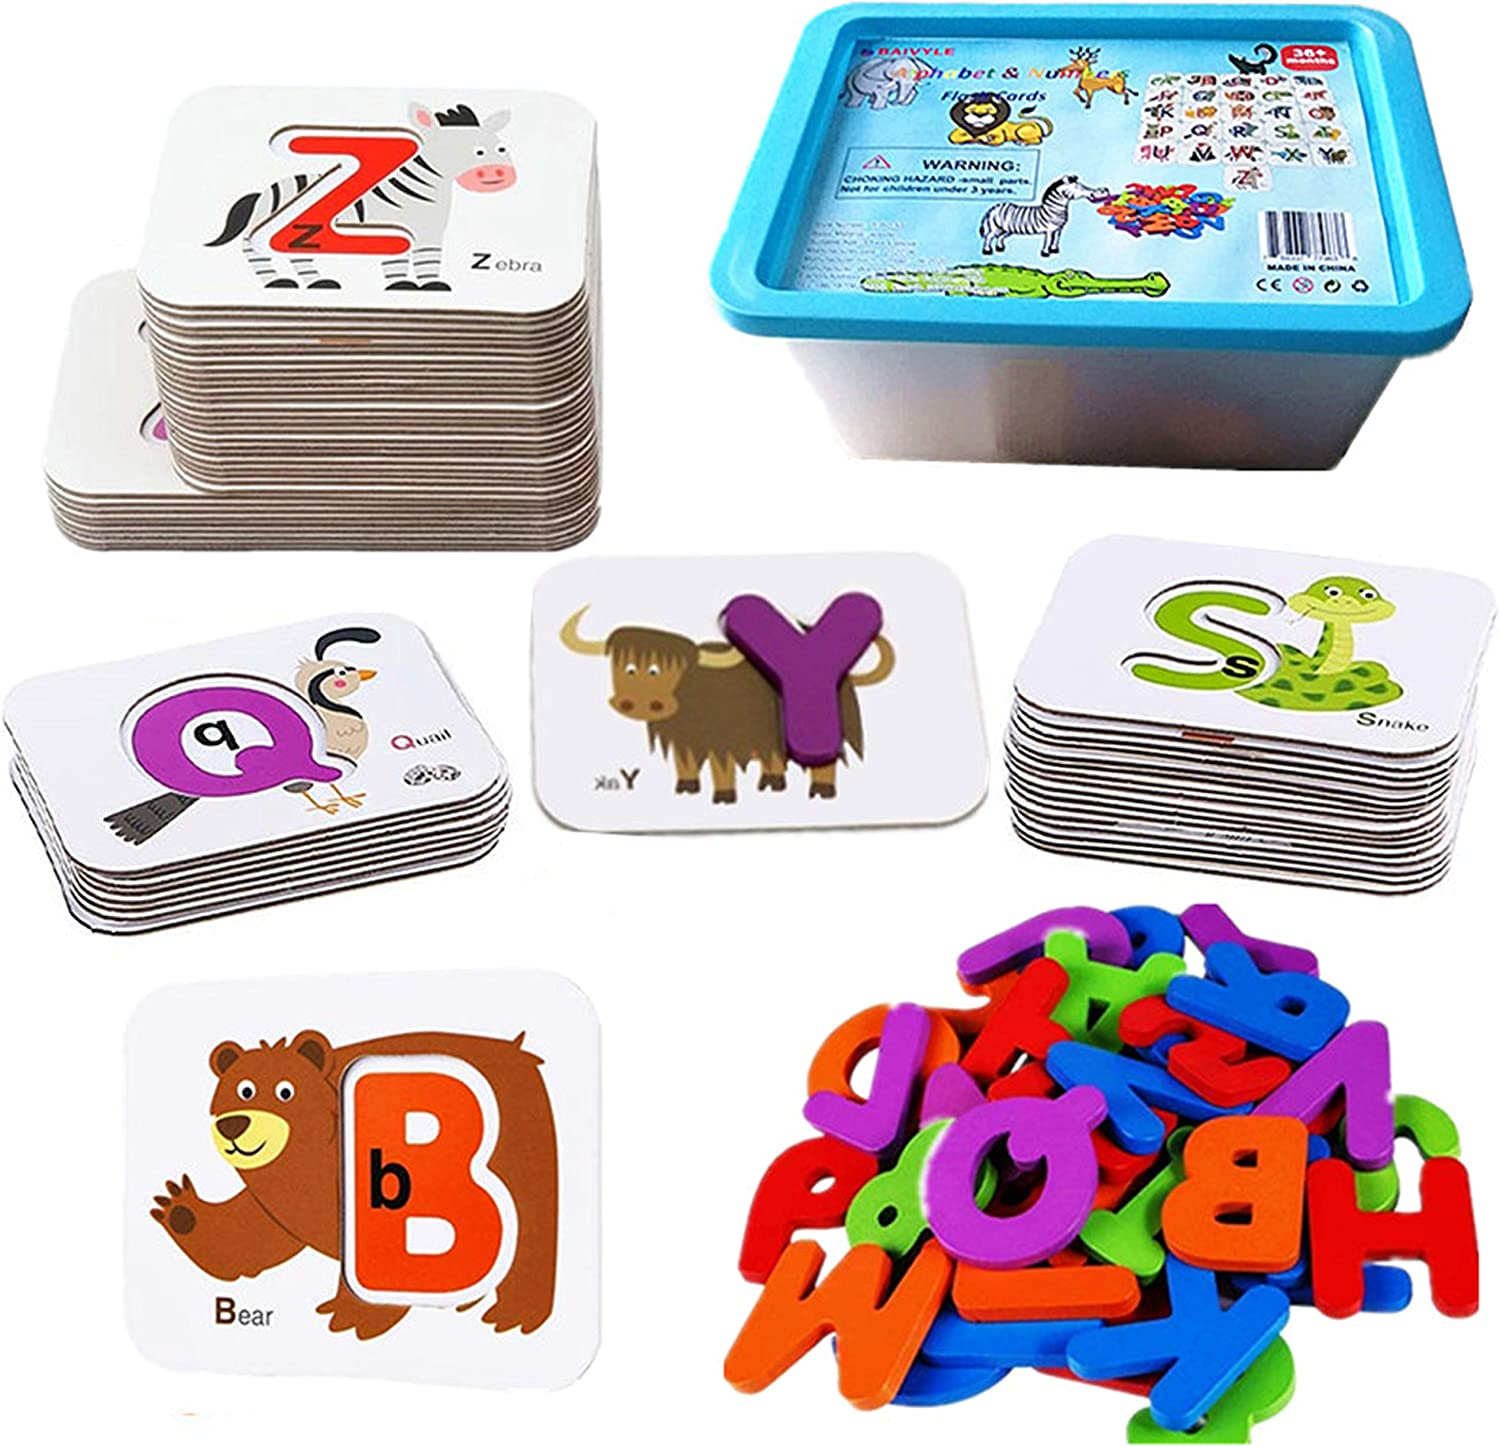 BAIVYLE Numbers and Alphabet Flash Cards for Kids - Preschool Learning Activities Wooden Animals Puzzle Flashcards Set-ABC Cards Educational Montessori Toys for Kids Boys Age 3 4 5 Years Old